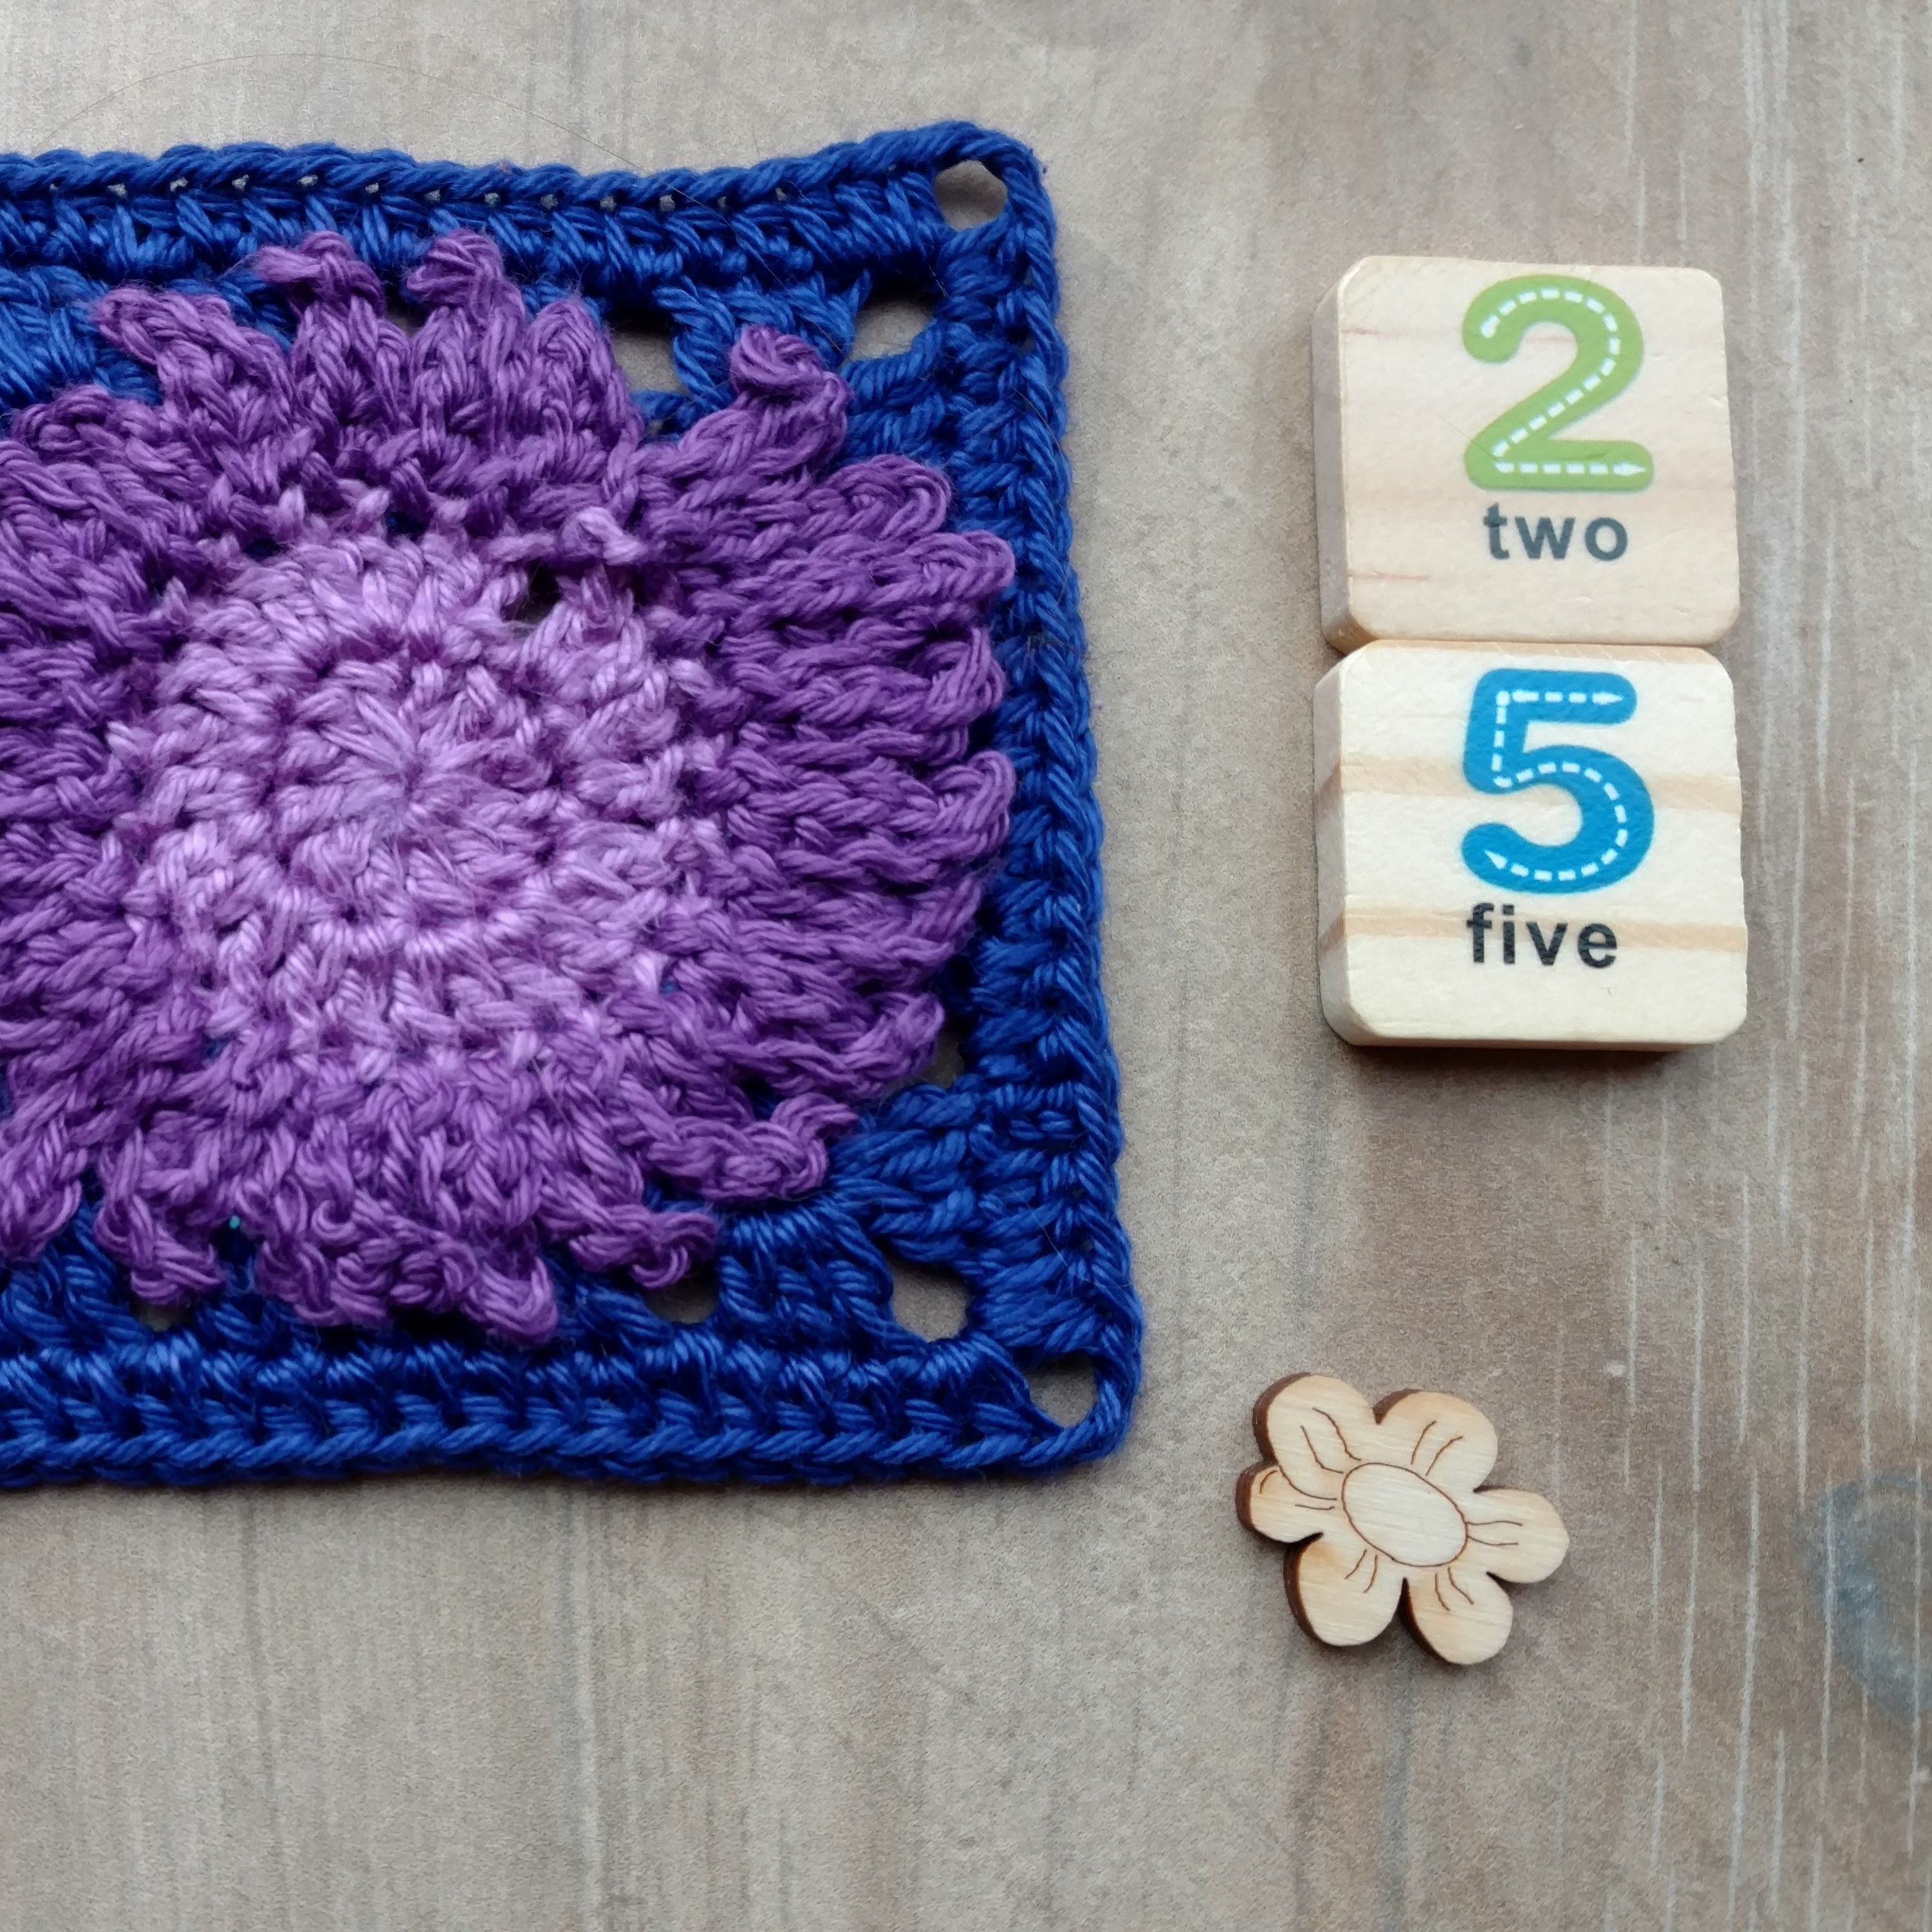 Cal 25 Crochet Patterns Pinterest Crochet Patterns Crochet